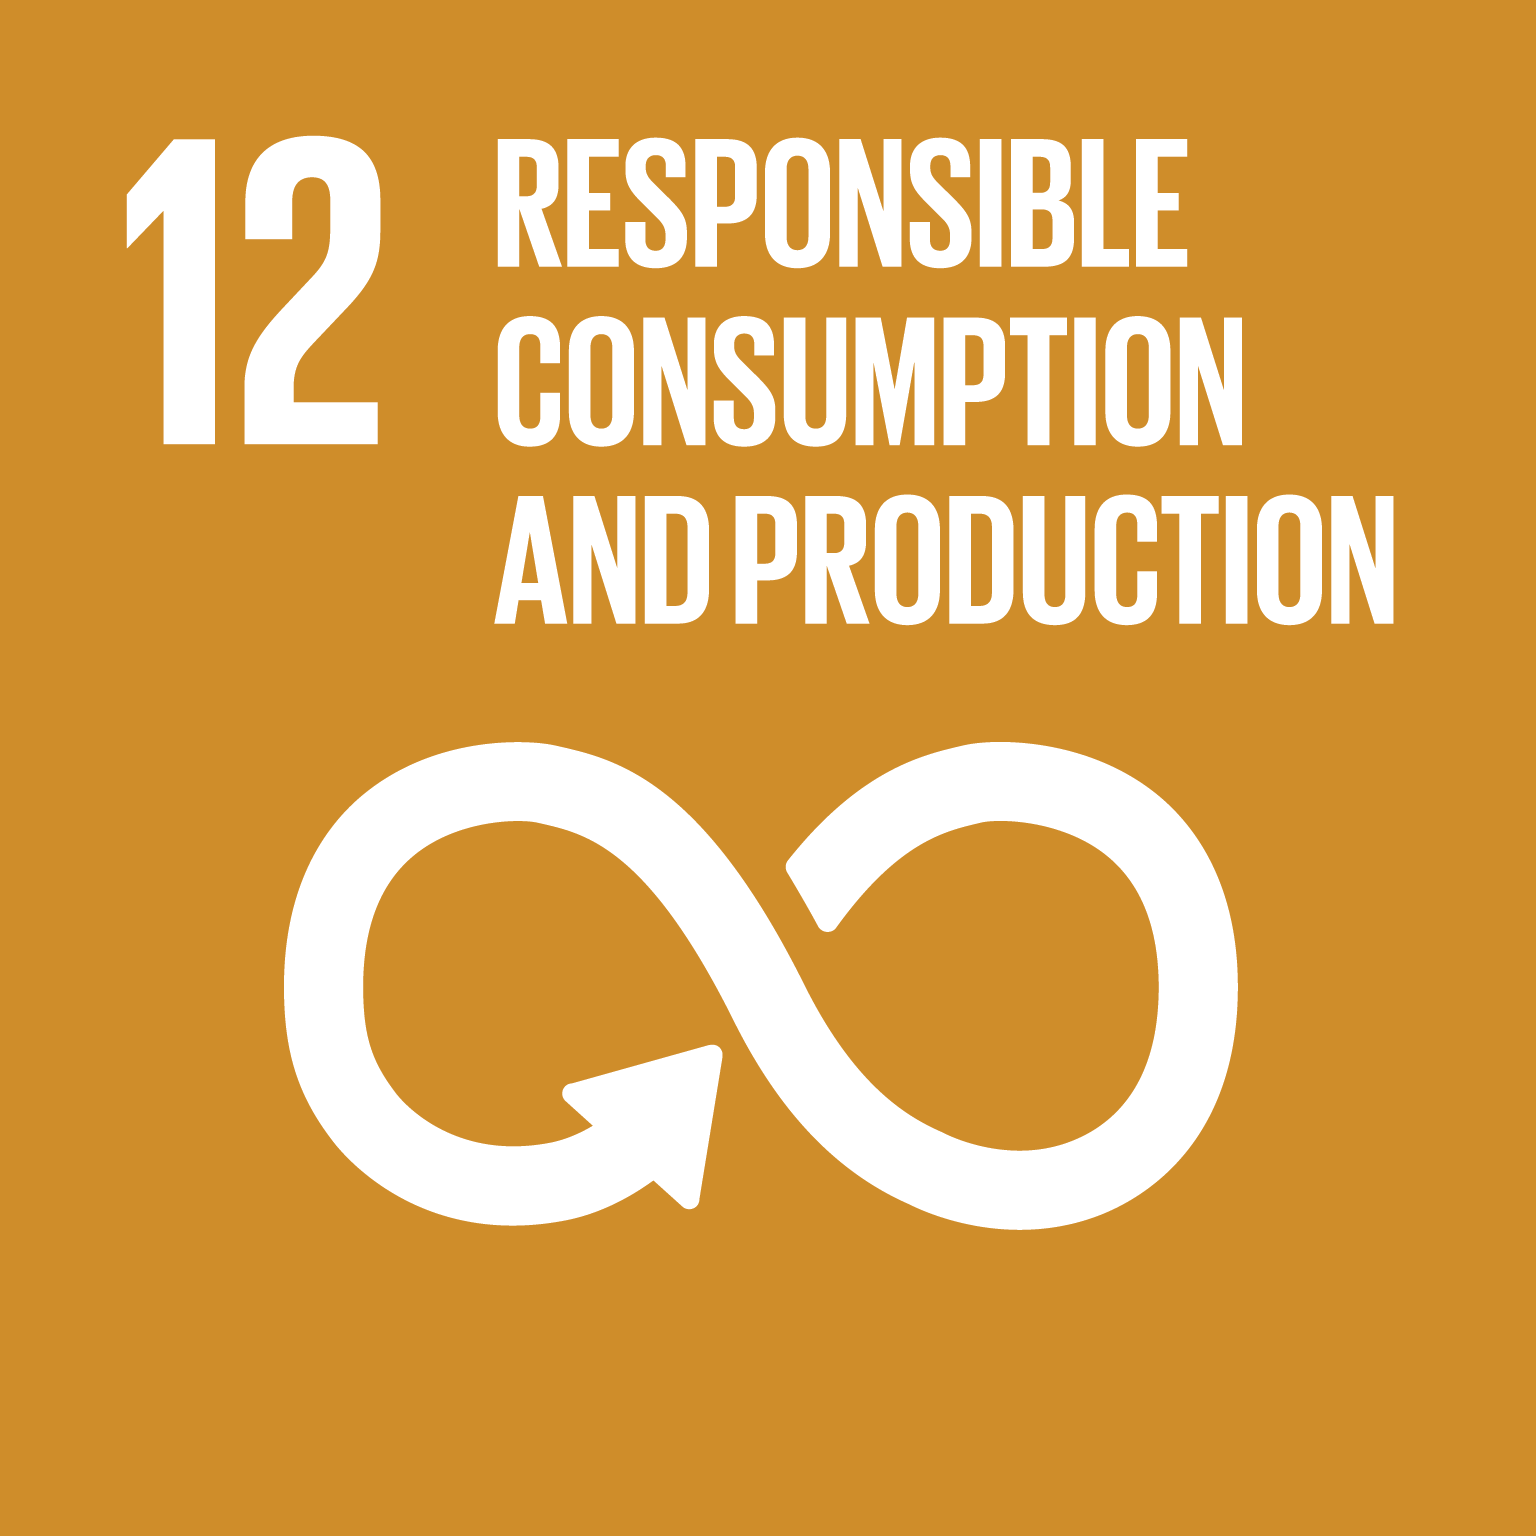 The Circular Economy - We need to look beyond the current linear model of production - where raw materials are extracted and processed into products that are sold, used and then discarded at the end of their 'useful life' (known as Take, Make and Dispose)- to a circular model - where materials, waste, energy use and emissions are minimised by slowing, narrowing and closing material and energy loops. Put simply, long-lasting design, maintenance, repair, reuse, re-manufacturing, refurbishing, and recycling:The Circular Economy.